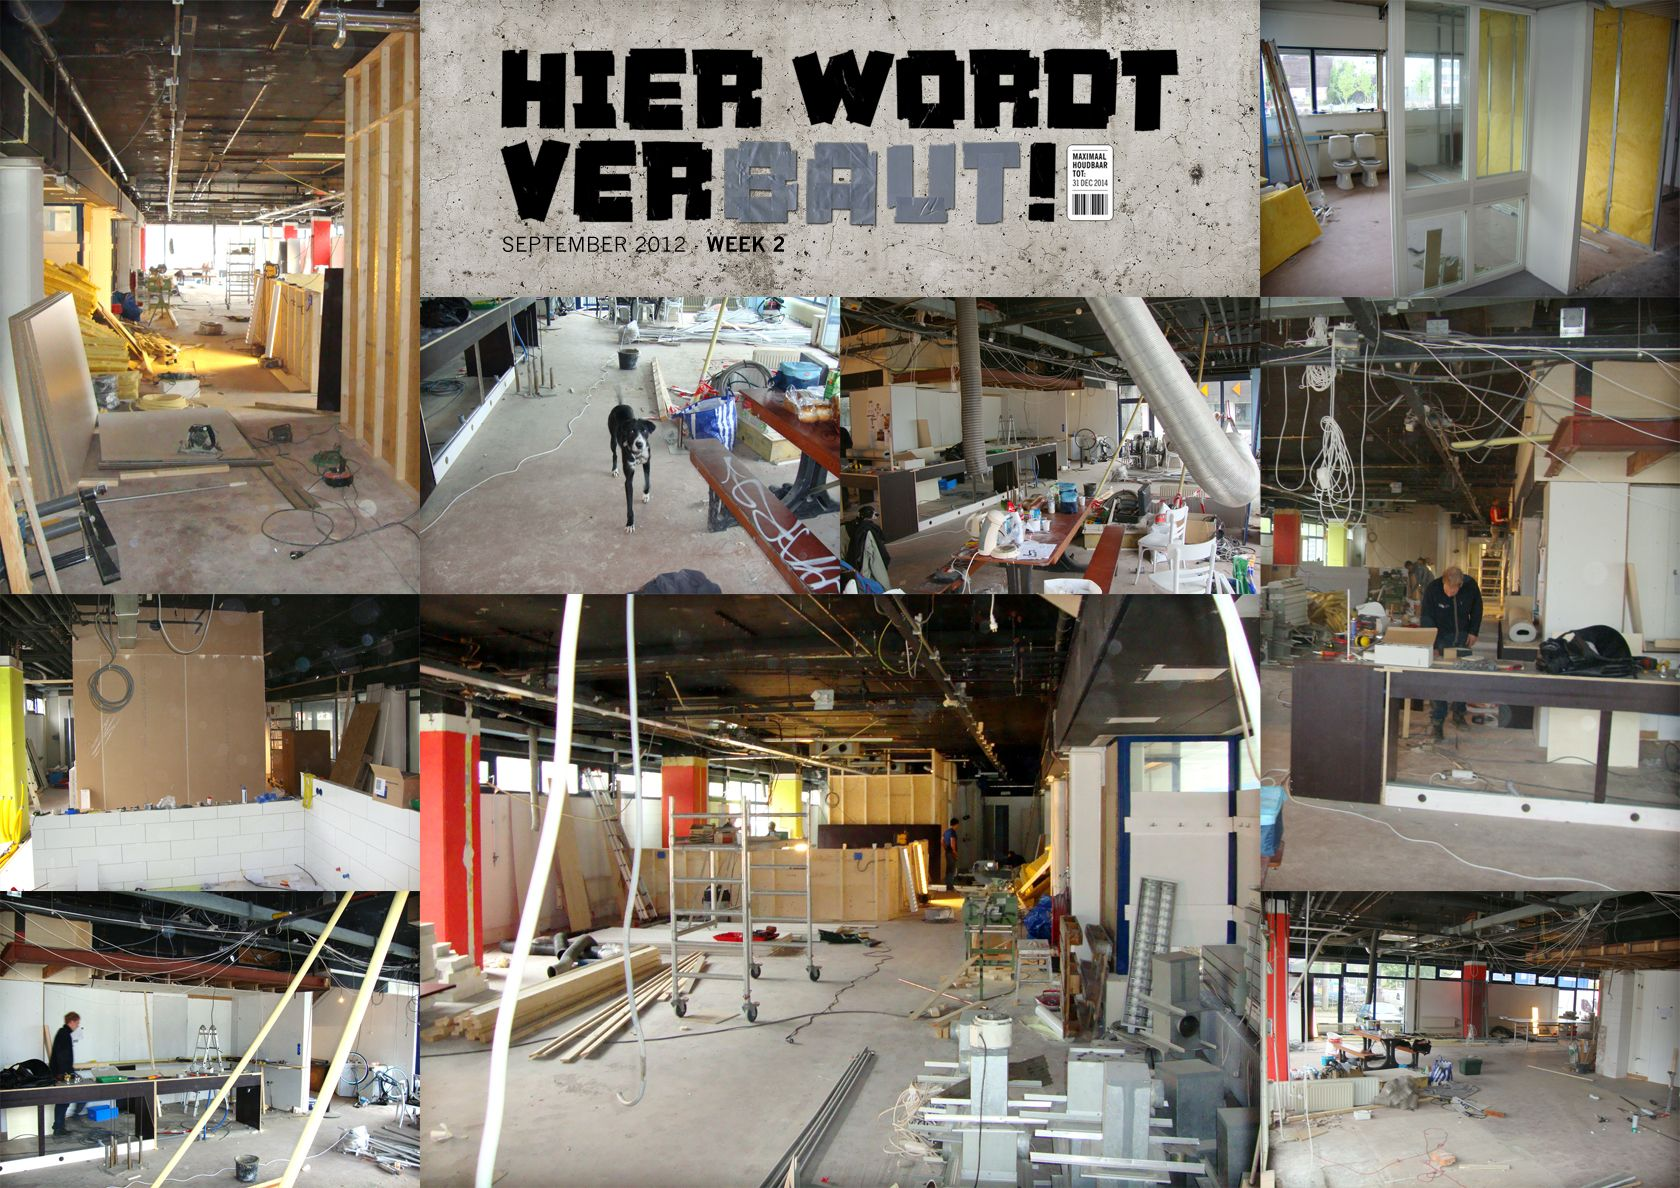 Working @ Baut Week 2 @ BAUT, Wibautstraat 125, Amsterdam. The amazing restaurant opening the 12th of october!!